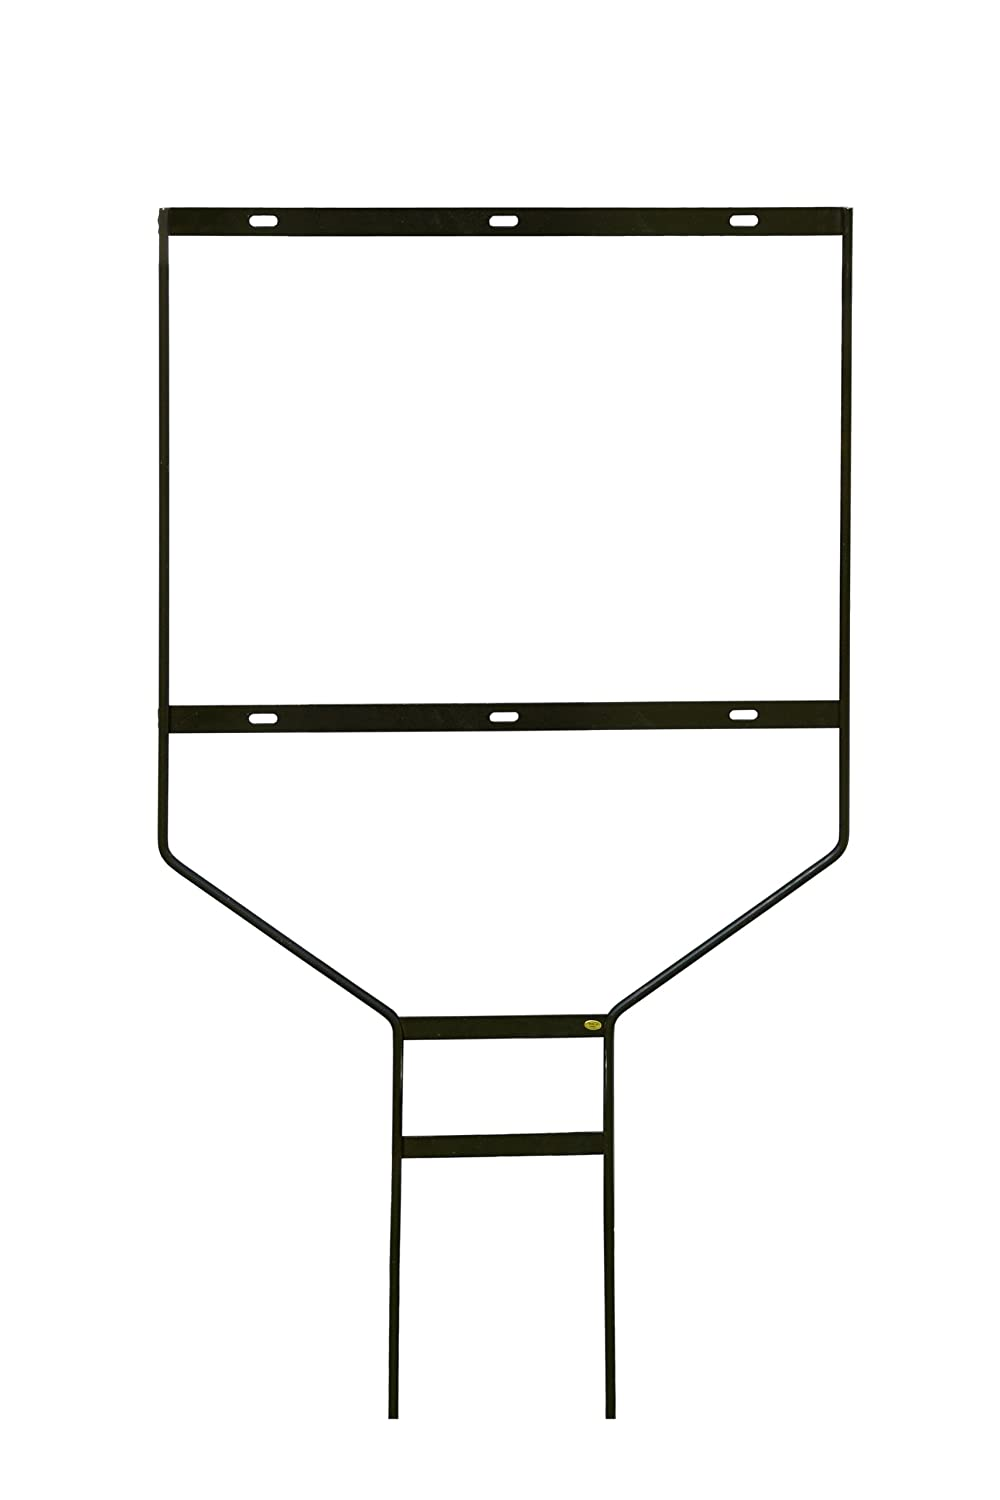 amazoncom displays2go set of 5 steel frame yard signs black powder coated finish for outdoor use real estate sign holders display 24 x 18 inches - Metal Sign Frames